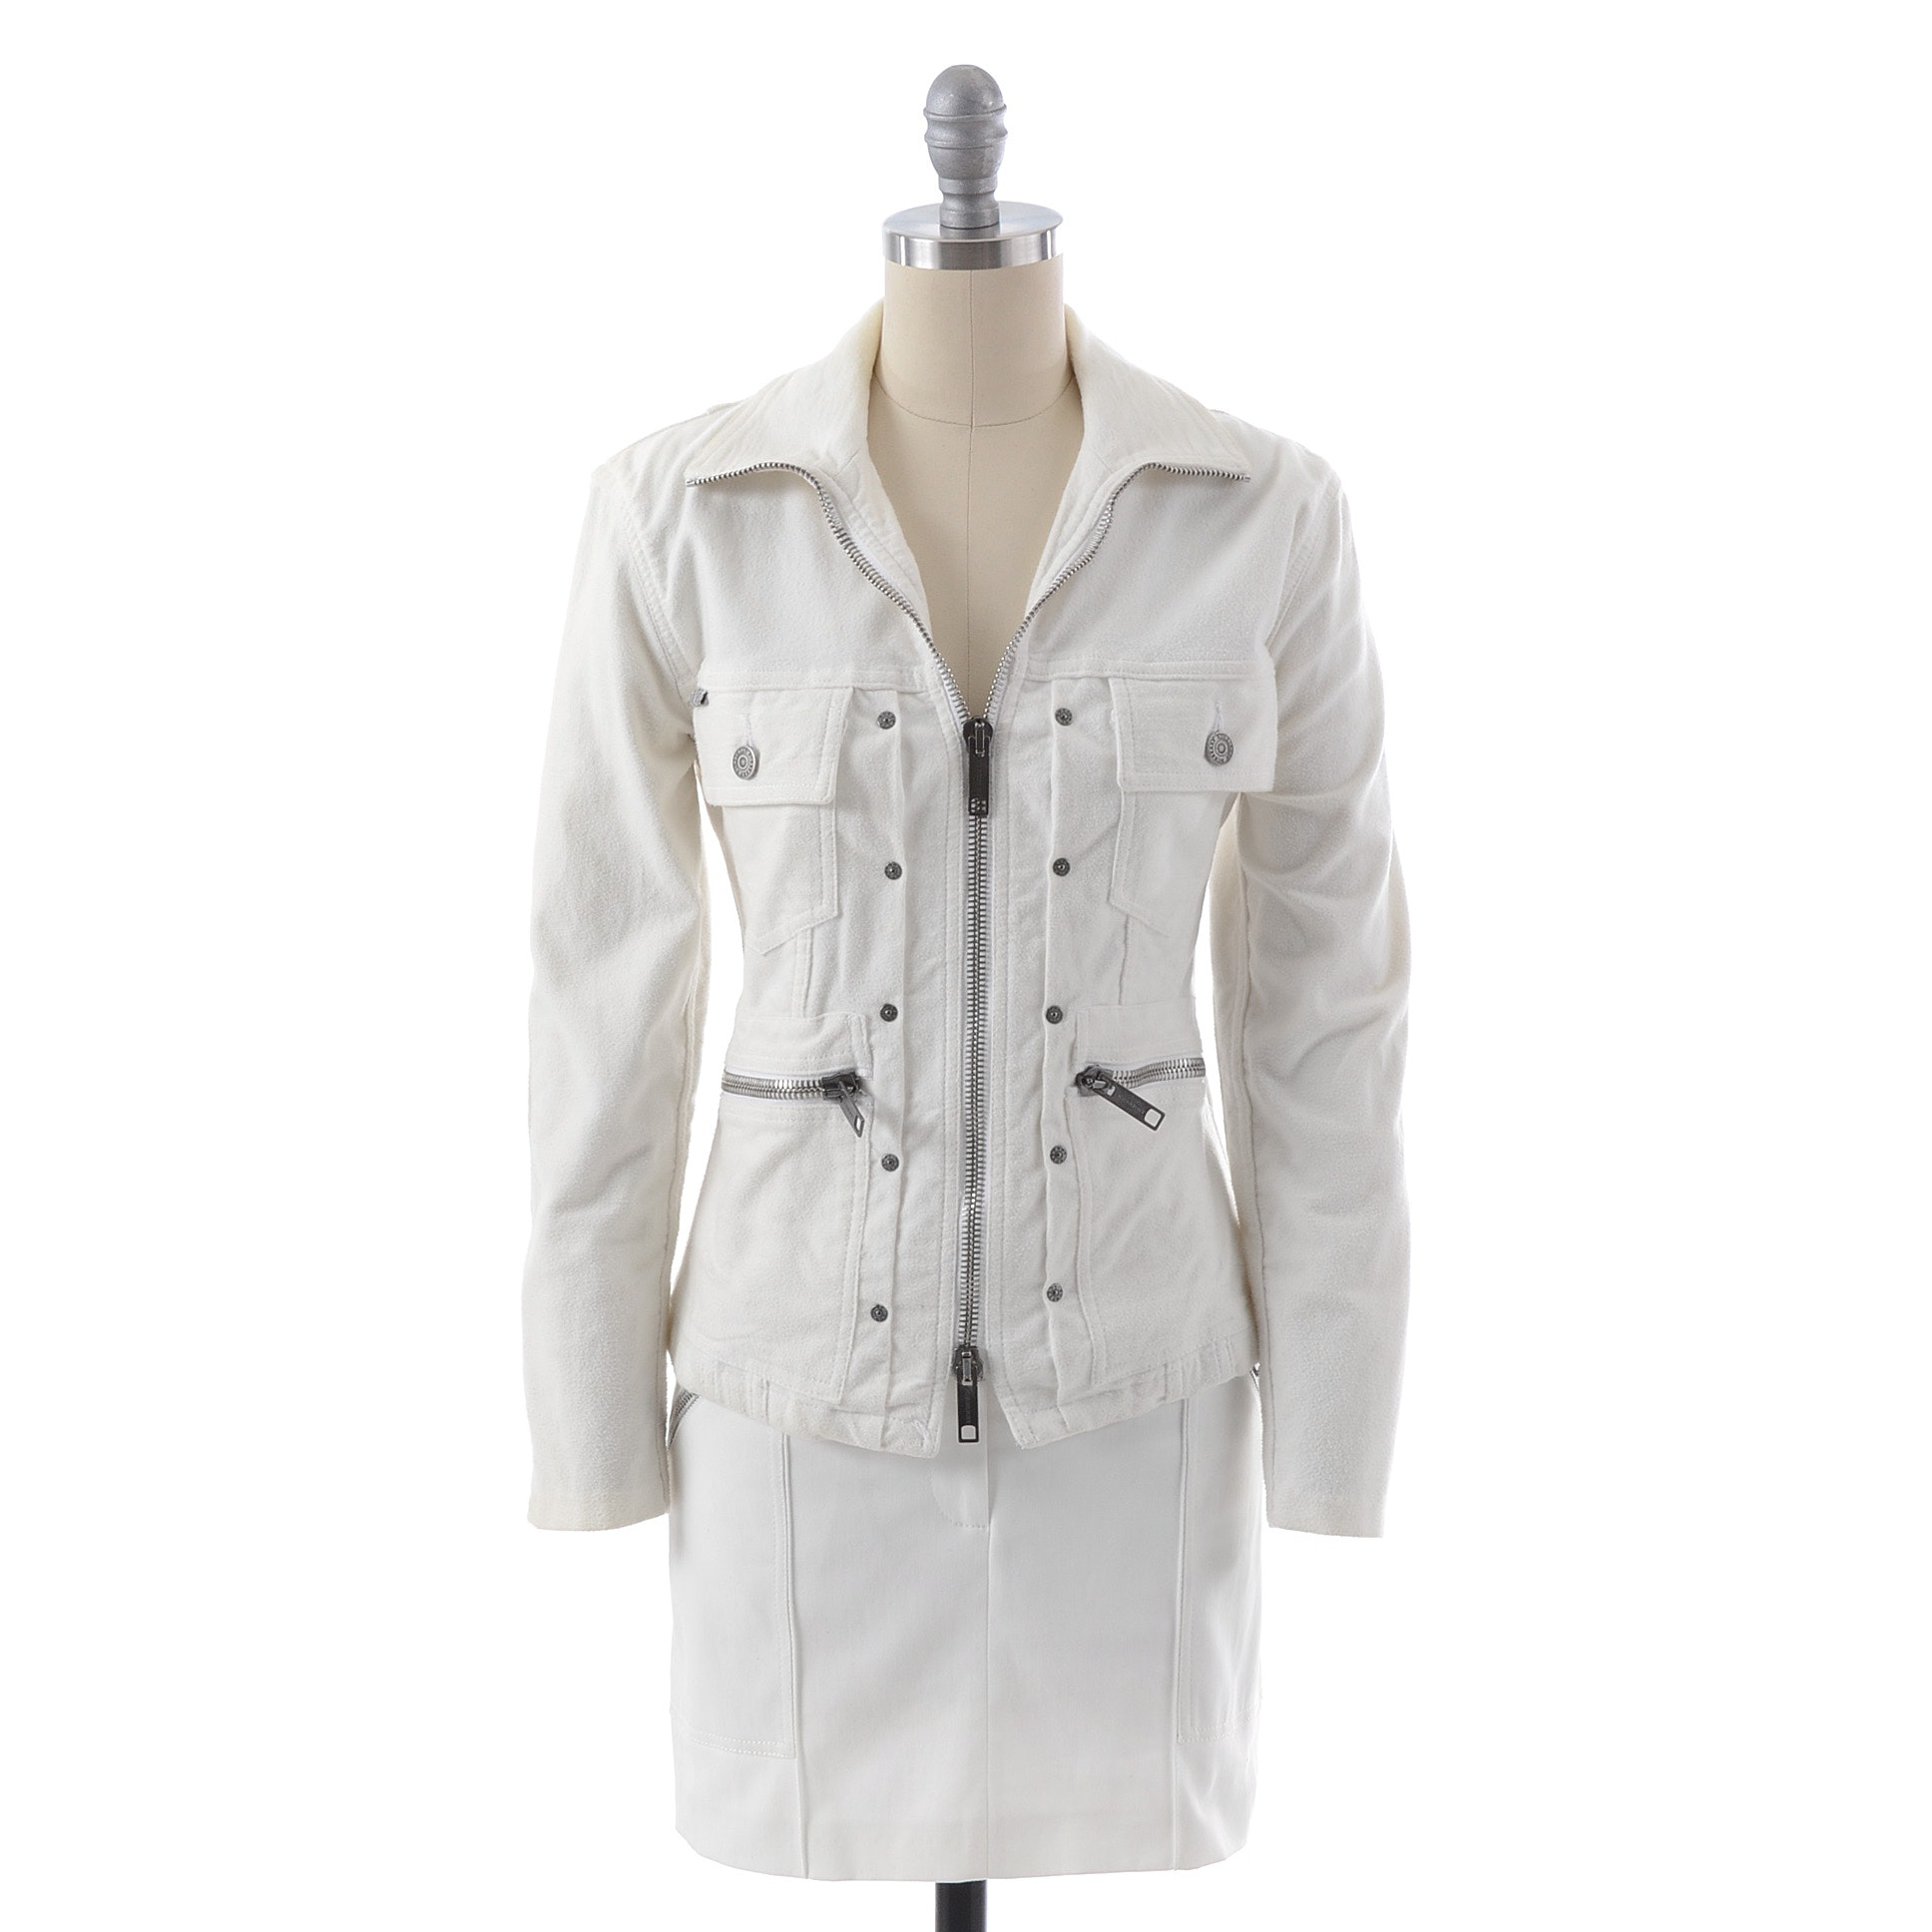 Burberry of London Zipper Front White Cotton Blend Jacket and Mini